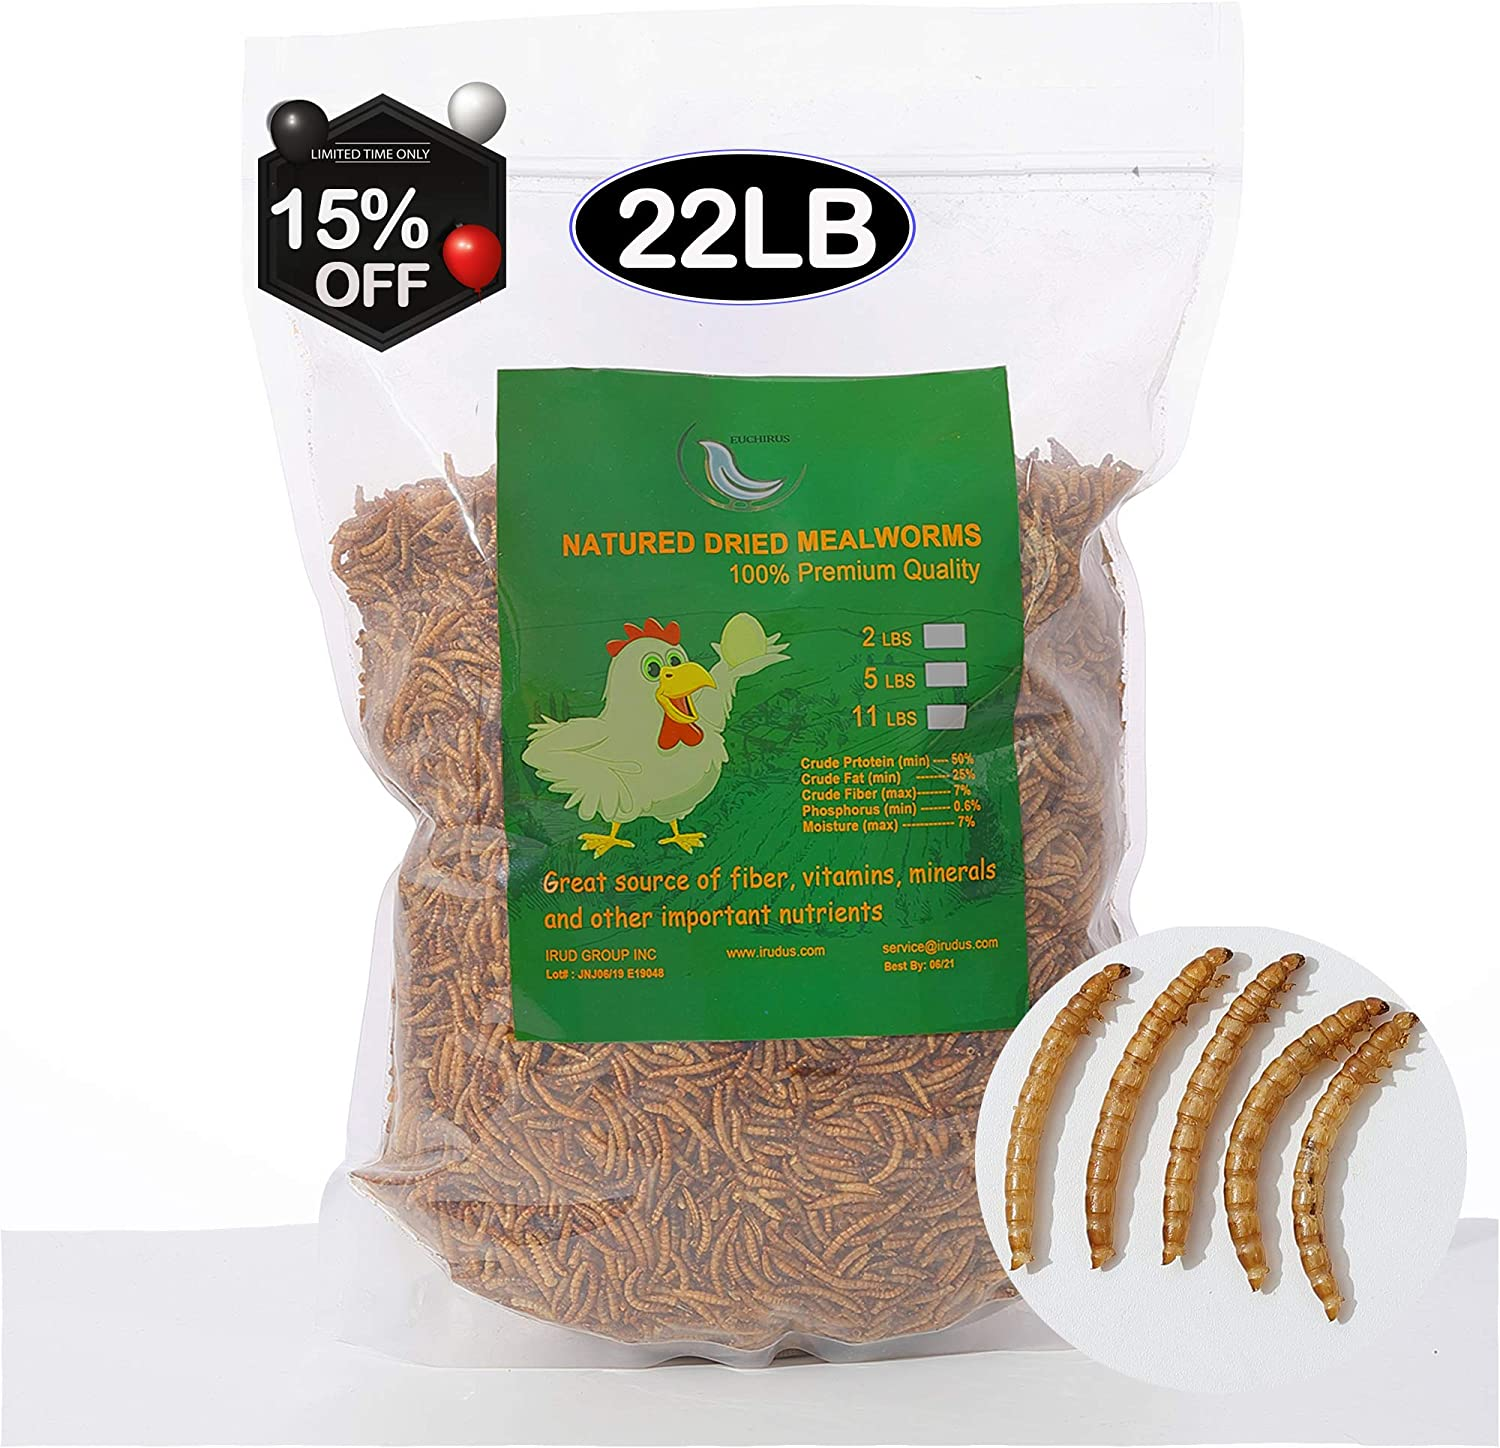 22 lbs Non-GMO Dried Mealworms for Wild Bird Chicken Fish,High-Protein,Large Meal Worms.